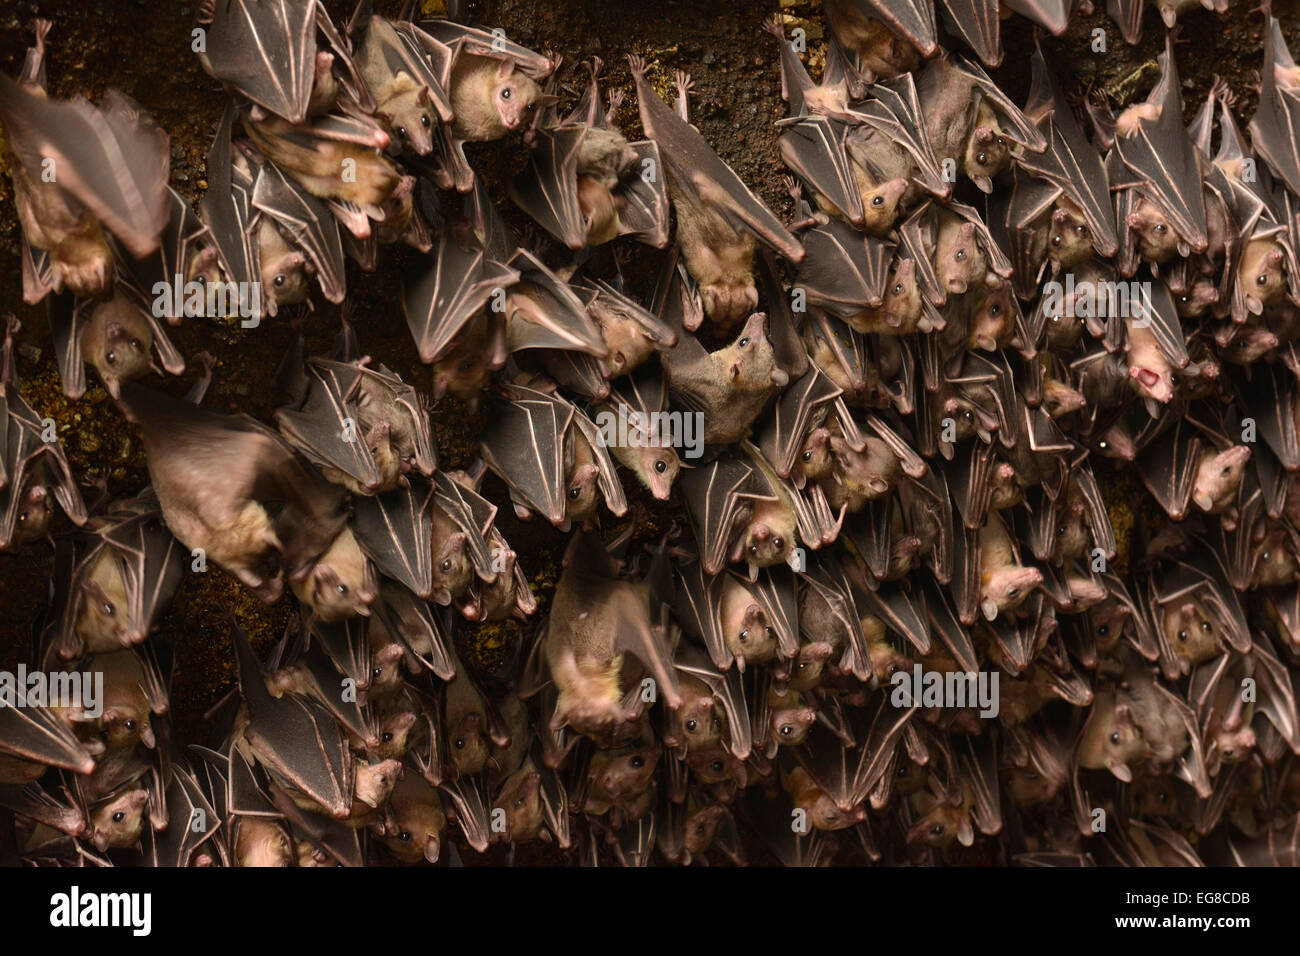 Egyptian Fruit Bat (Rousettus aegytiacus) colony roosting in mouth of cave, Bali, Indonesia, October - Stock Image